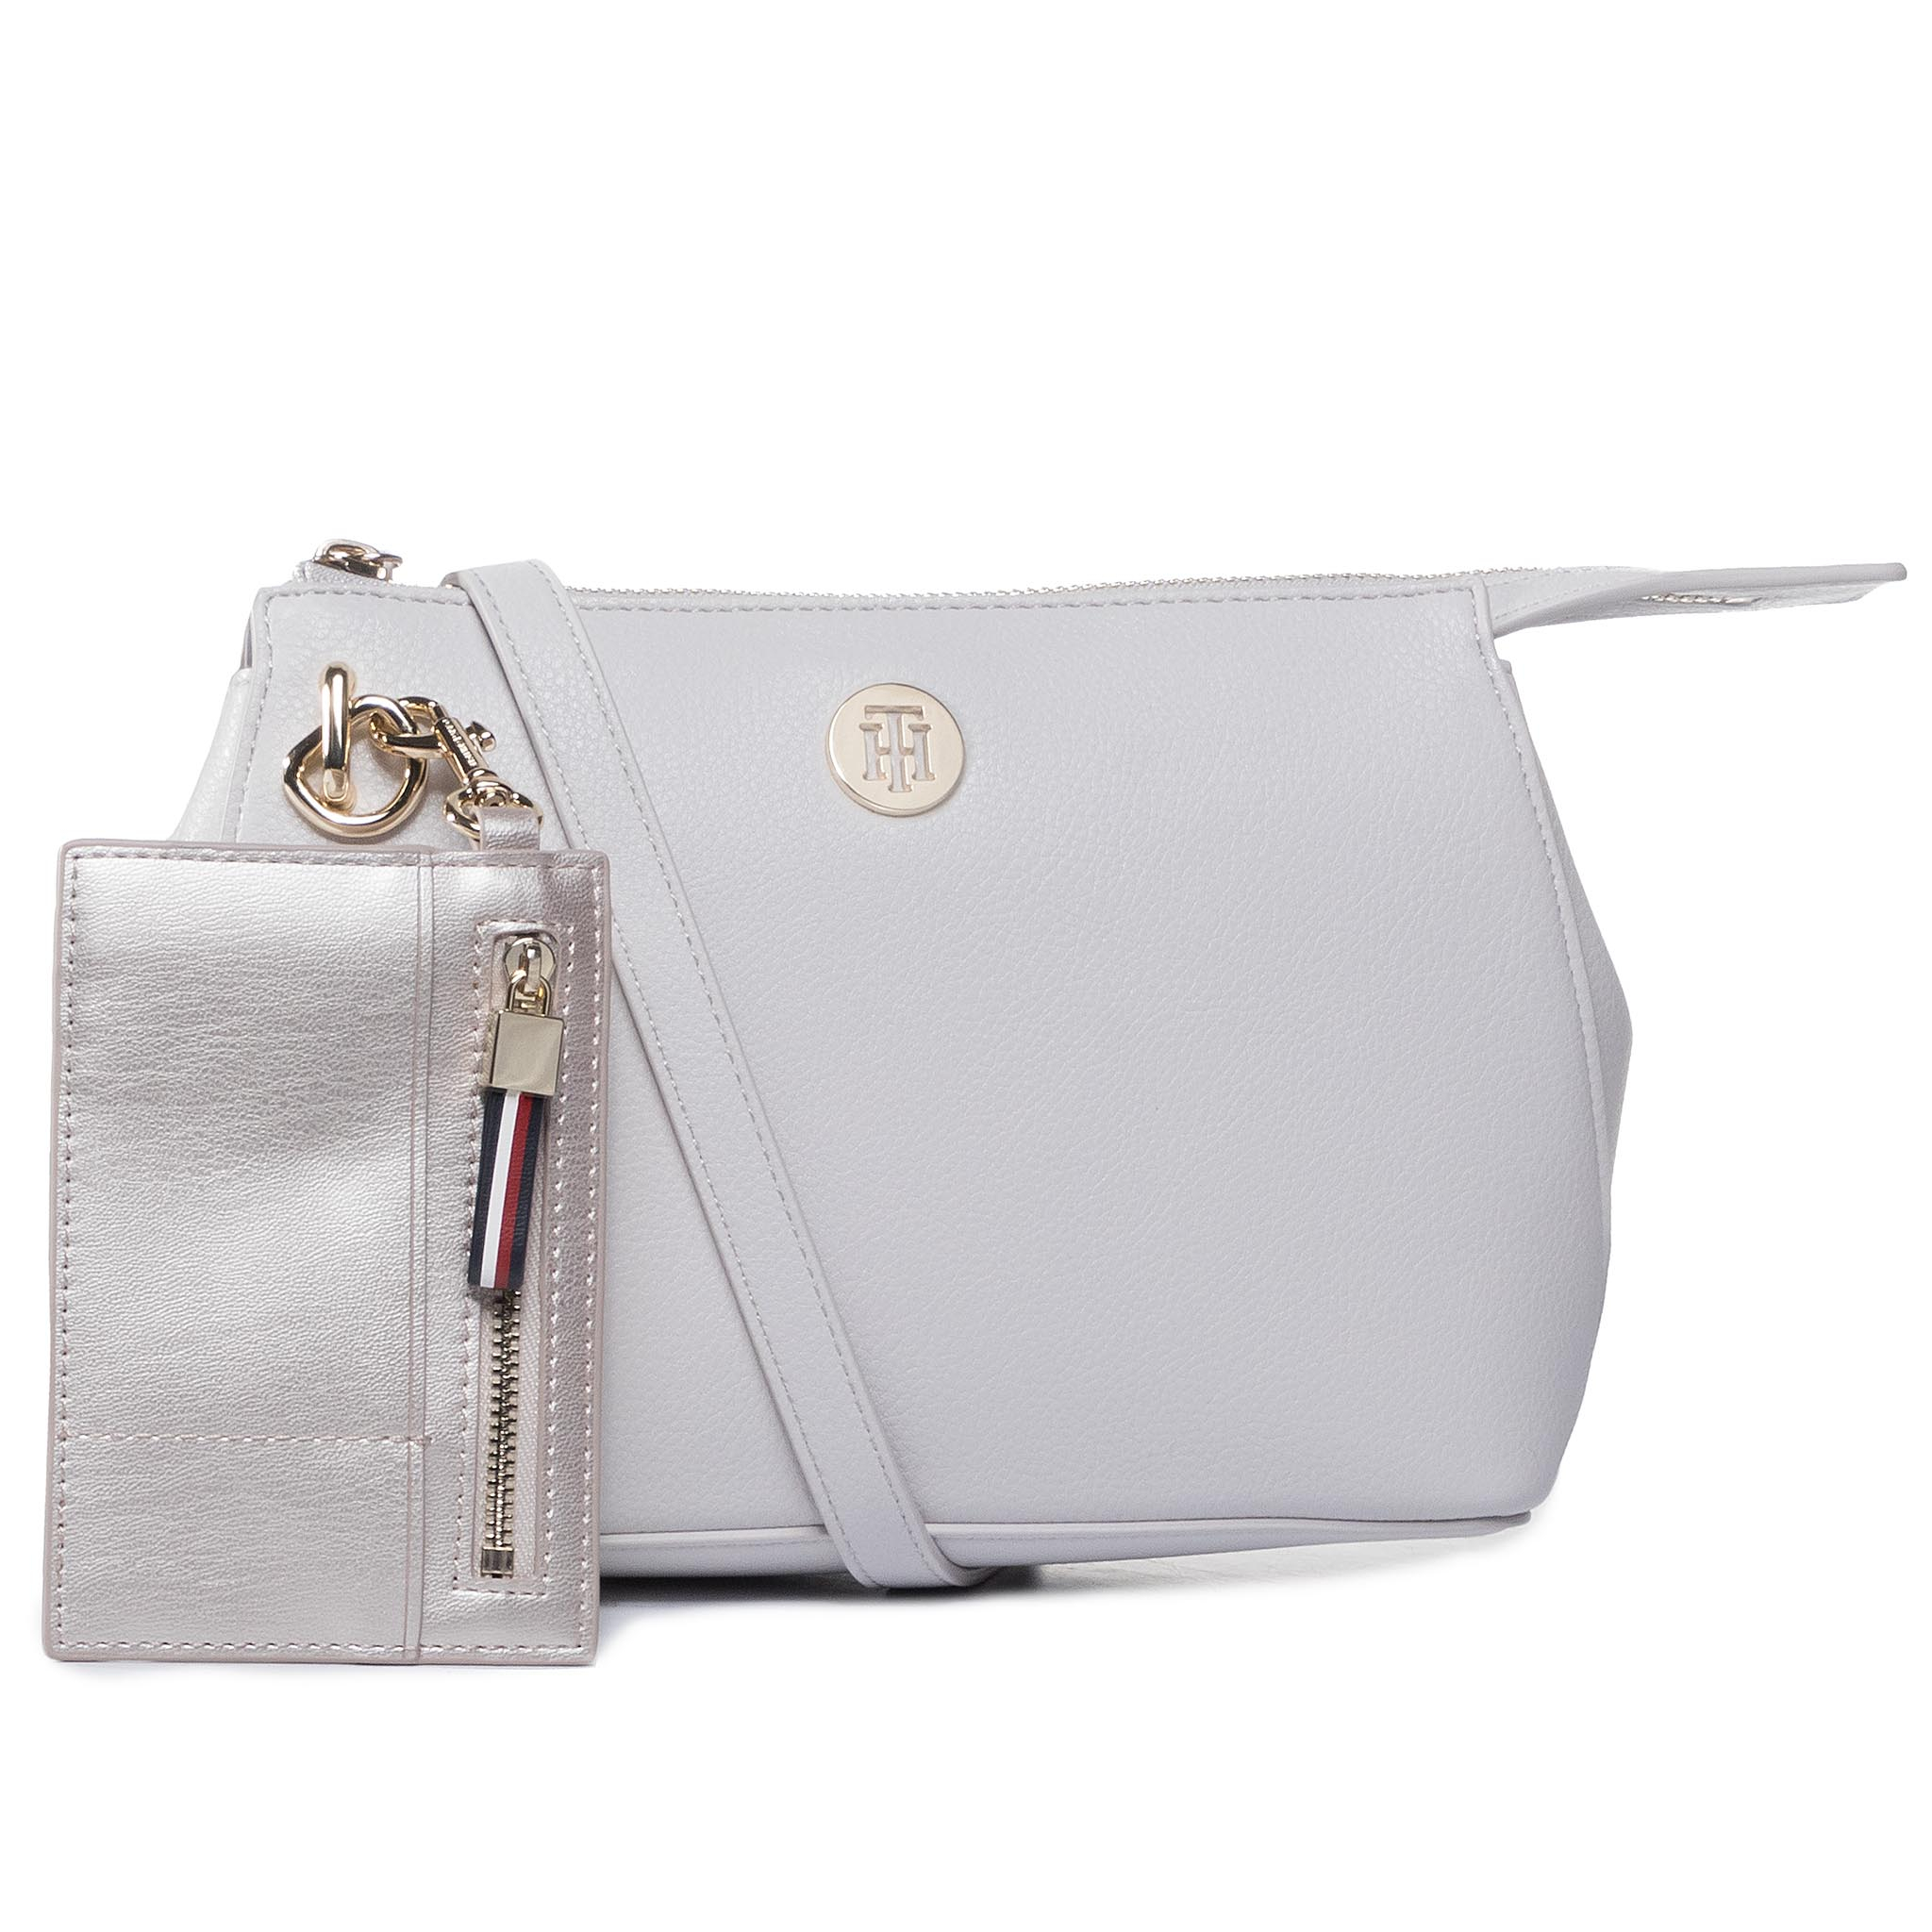 Geantă TOMMY HILFIGER - Charming Tommy Crossover AW0AW08157 PSU